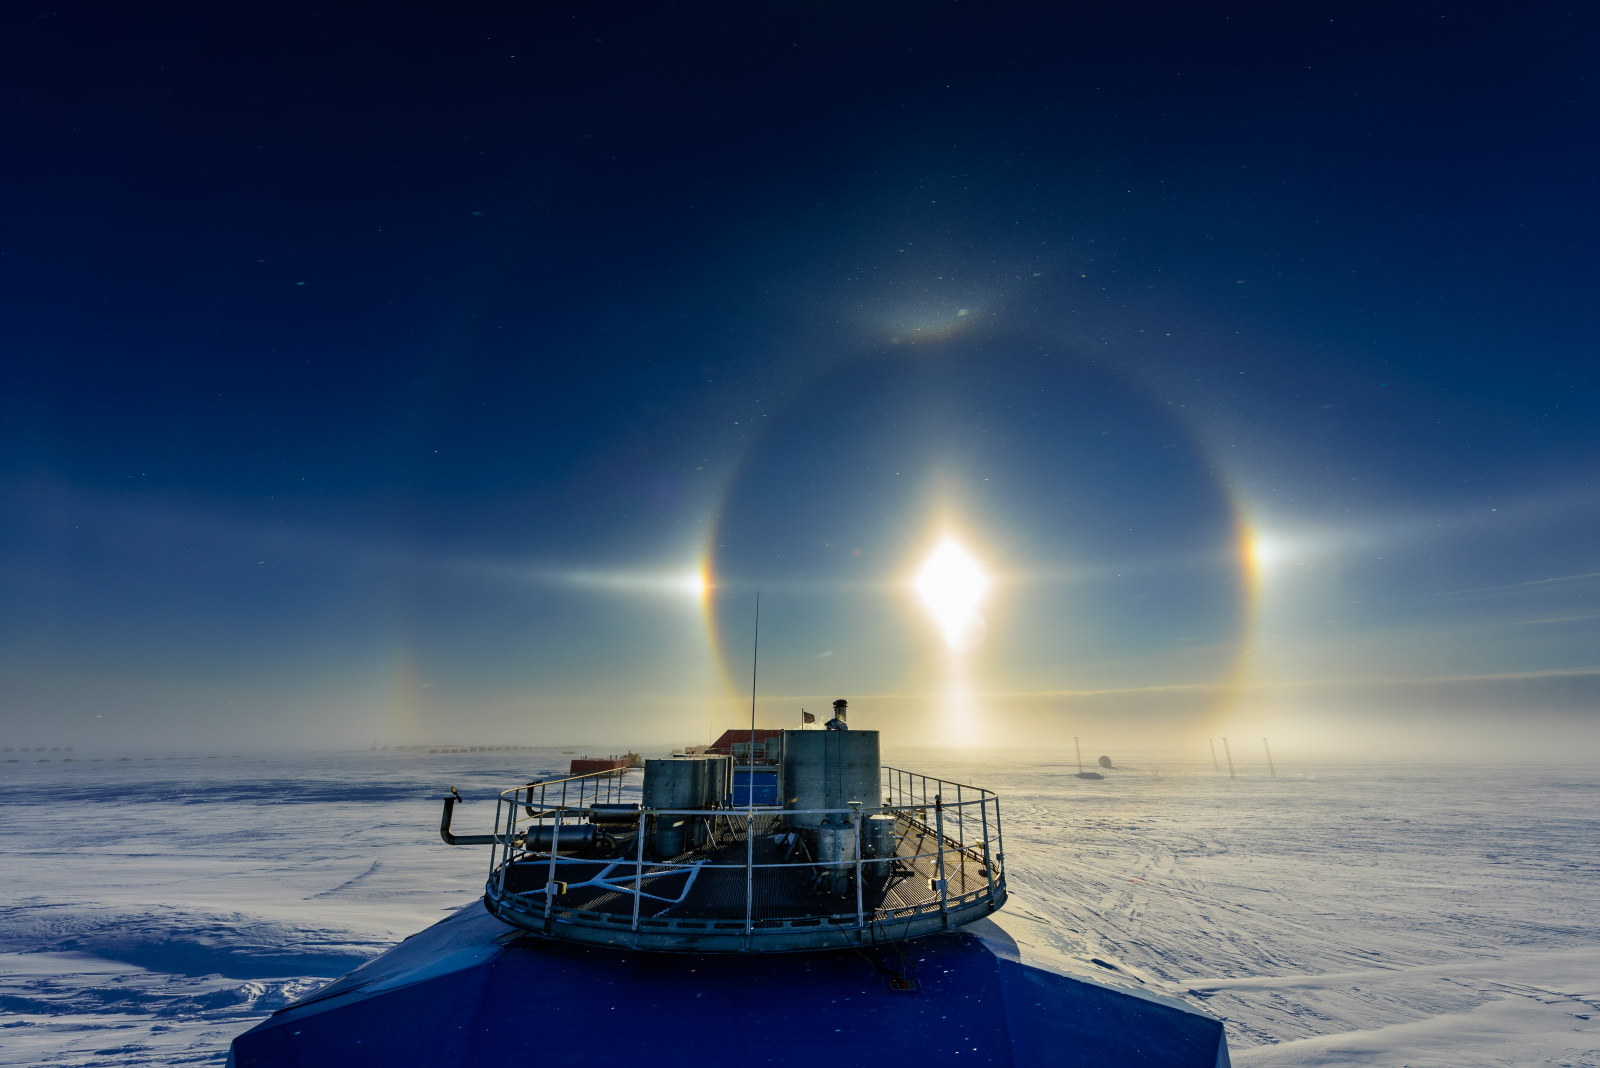 22° and 46° Sun Halos, Sun Dogs, Parhelic Circle, Upper Tangent Arc and Circum Zenithal Arc visible over Halley Research Station, Antarctica